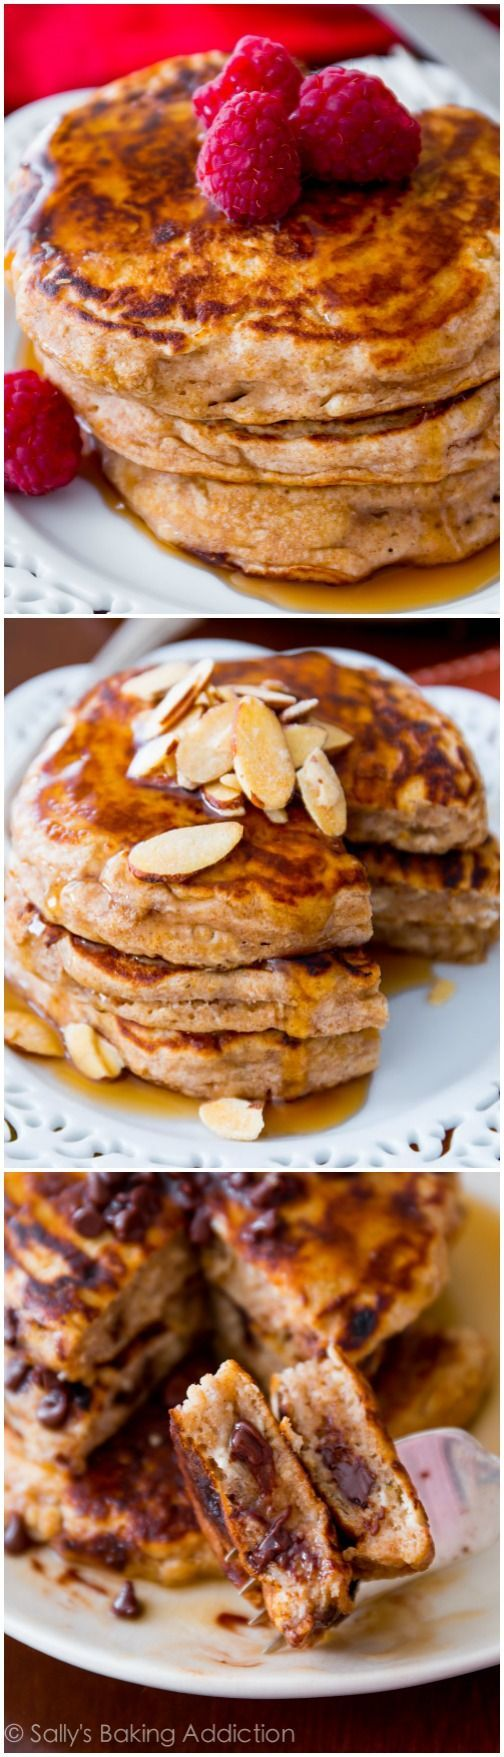 Healthy Whole Wheat Pancakes that have RAVE reviews from readers, taste testers, and me. I'm obsessed with this simple healthy breakfast recipe! Whole Wheat Pancakes that have RAVE reviews from readers, taste testers, and me. I'm obsessed with this simple healthy breakfast recipe!